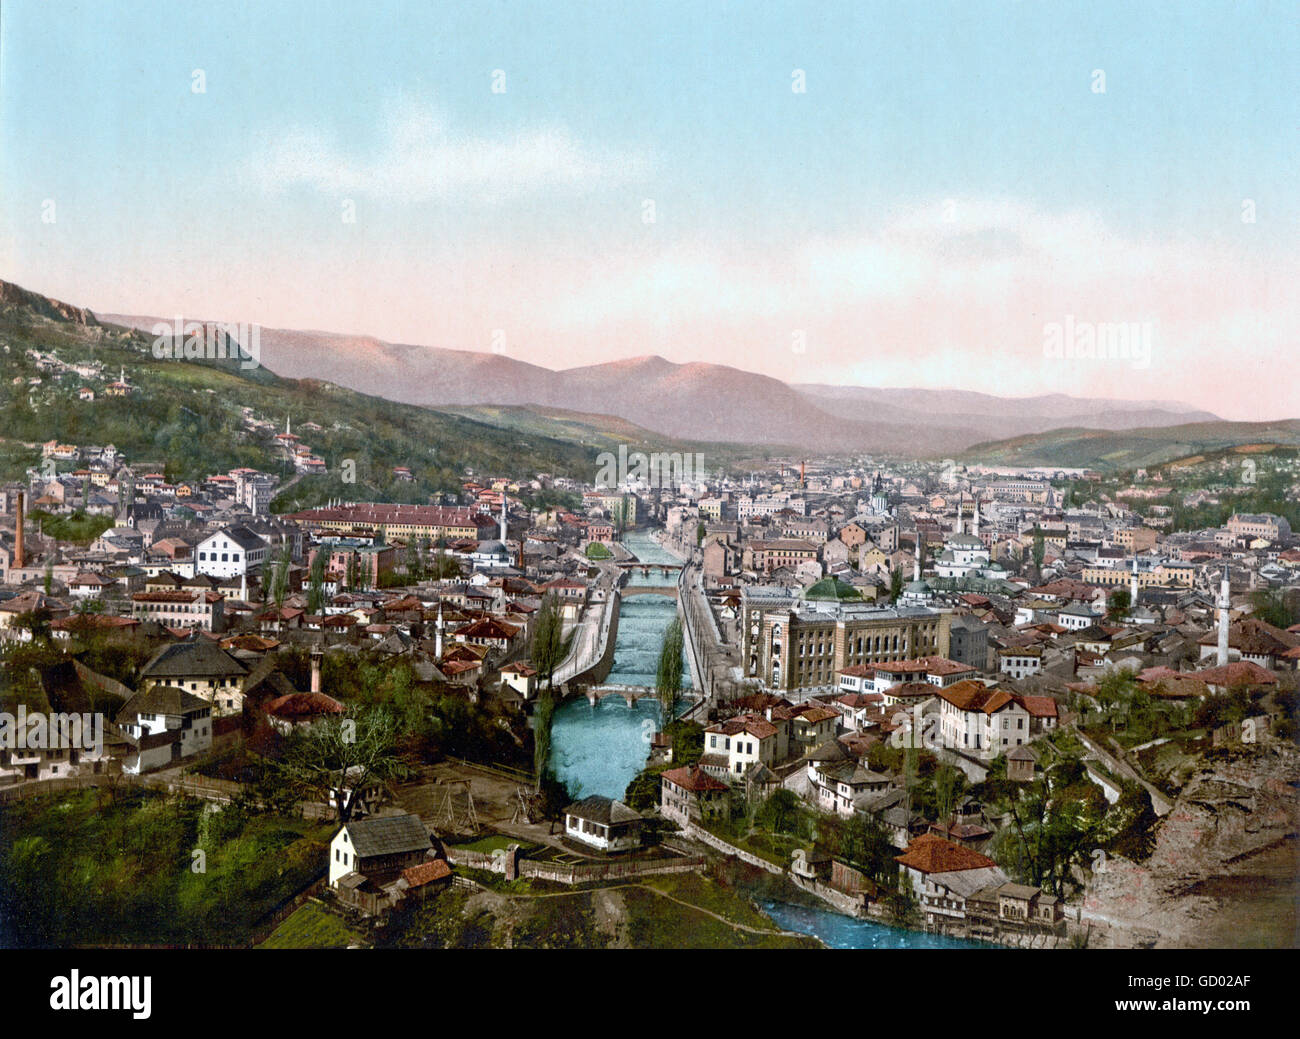 View over Sarajevo from the North at the end of the 19th century, photochrome print c.1890-1900. - Stock Image